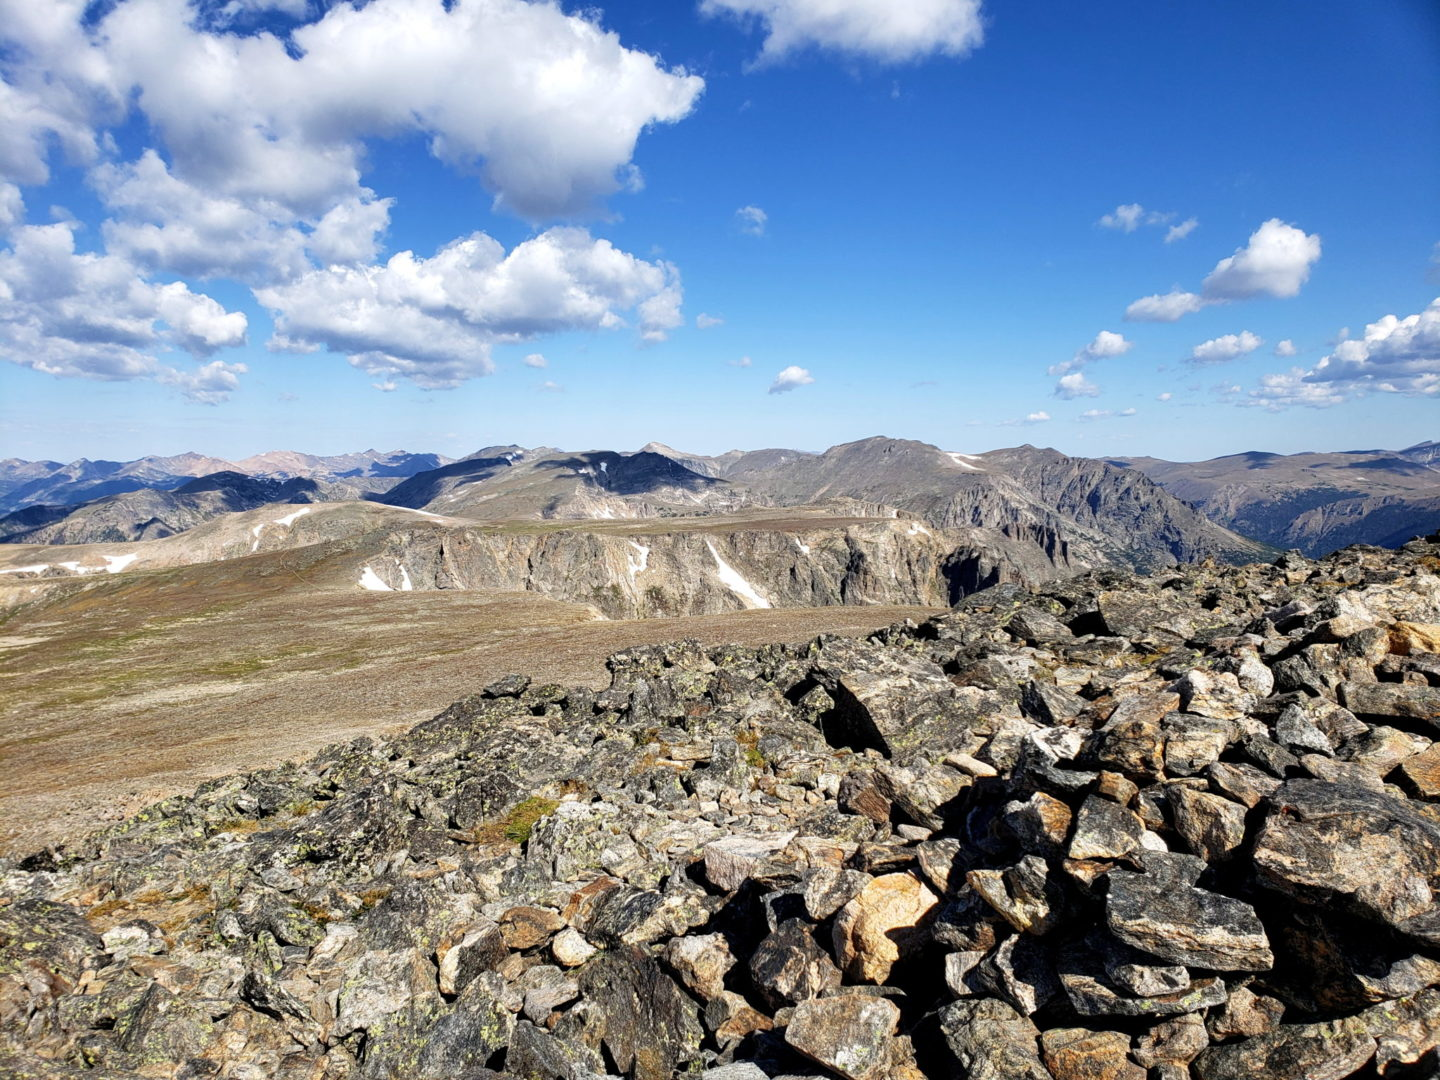 View of Flattop Mountain from the shoulder of Hallett Peak